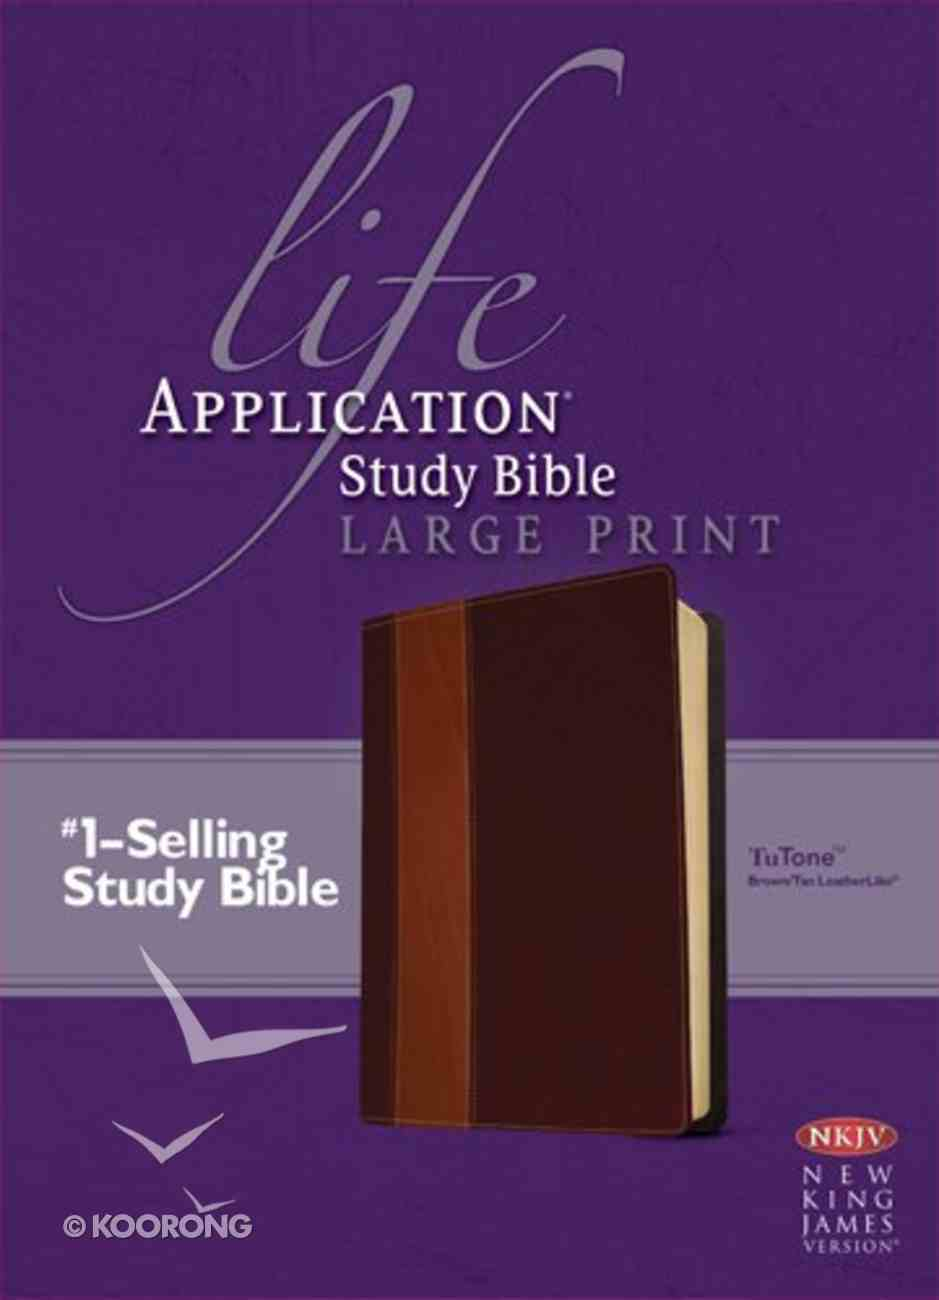 NKJV Life Application Study Bible Large Print Brown/Tan 2nd Edition (Red Letter Edition) Imitation Leather